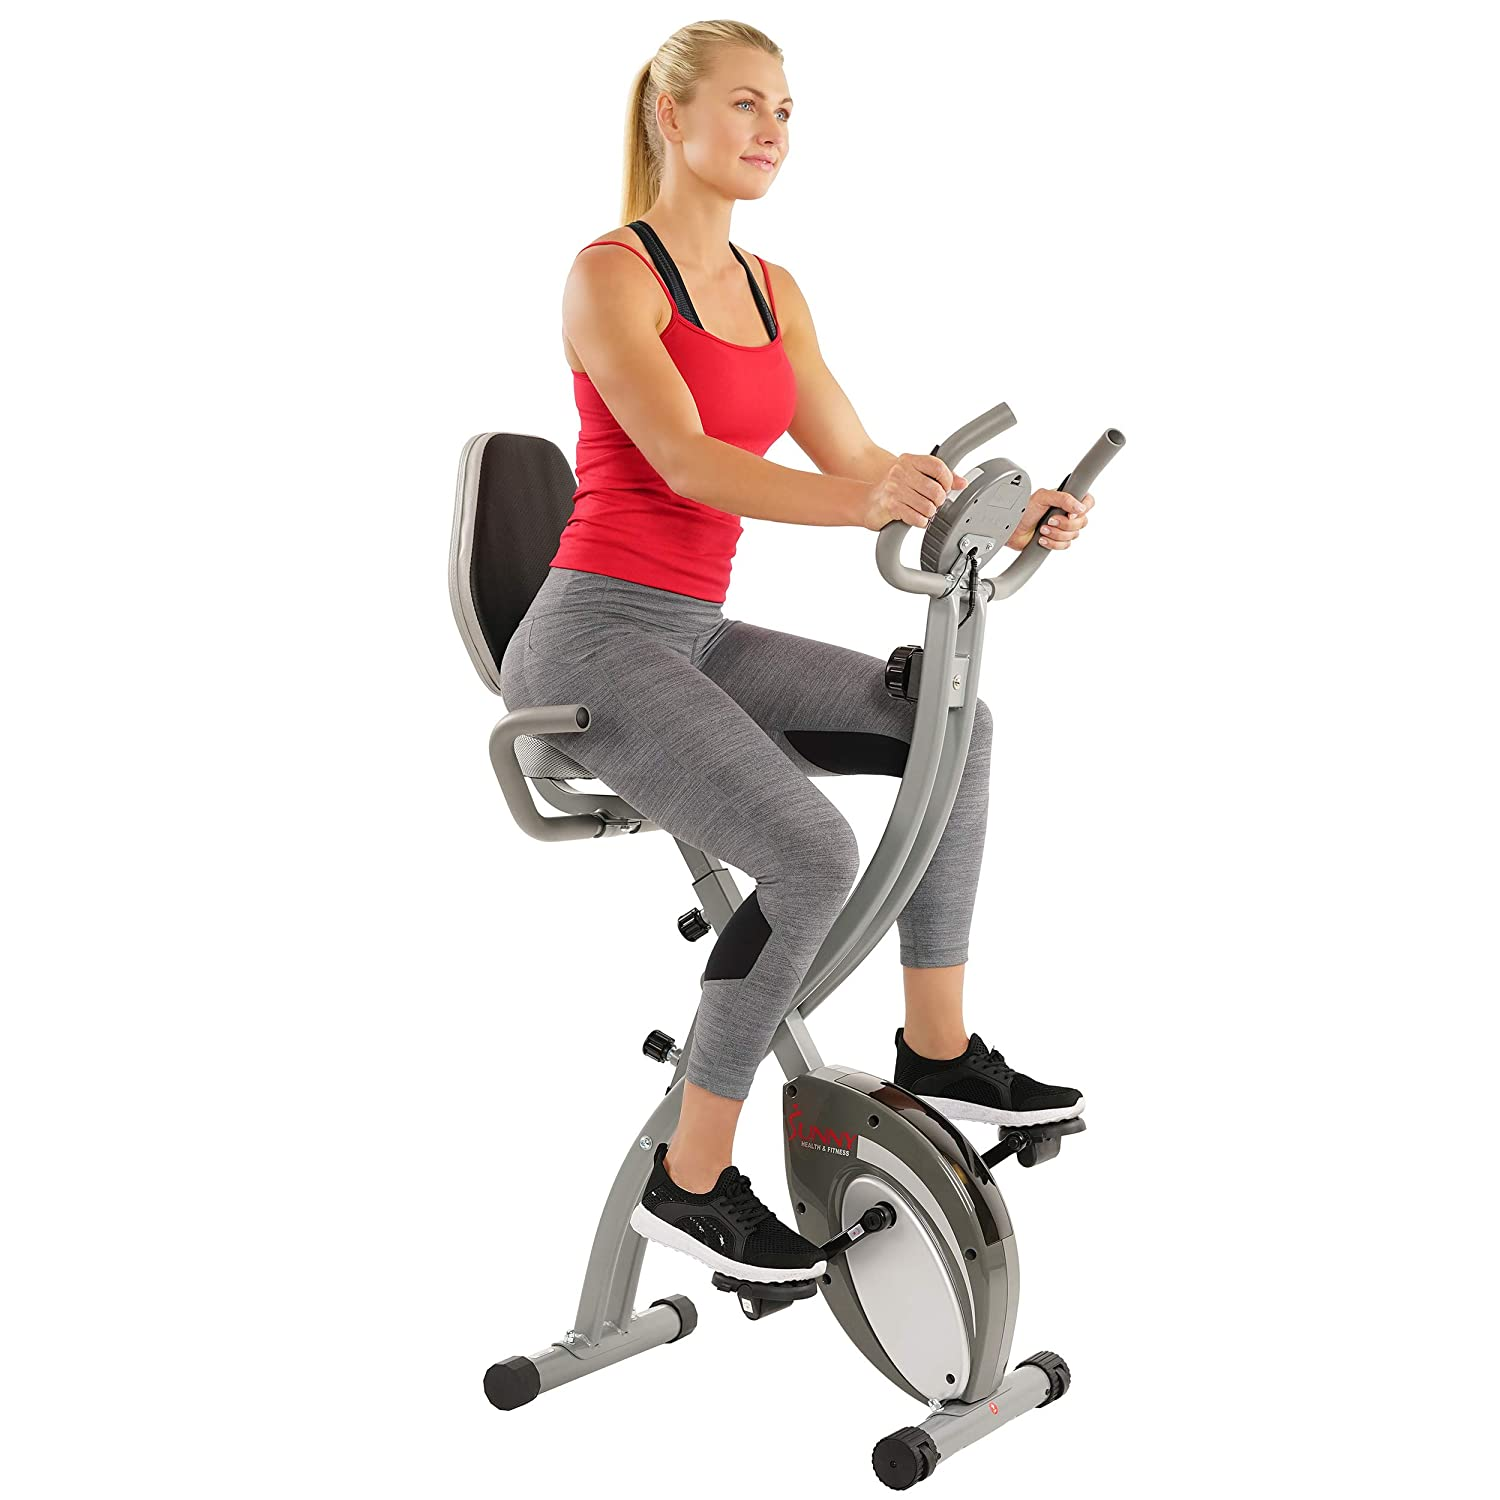 Sunny Health & Fitness Comfort XL Ultra Cushioned Seat Folding Exercise Bike with 300 LB Max Weight, Pulse Monitor, Device Holder and Digital Display - SF-B2721